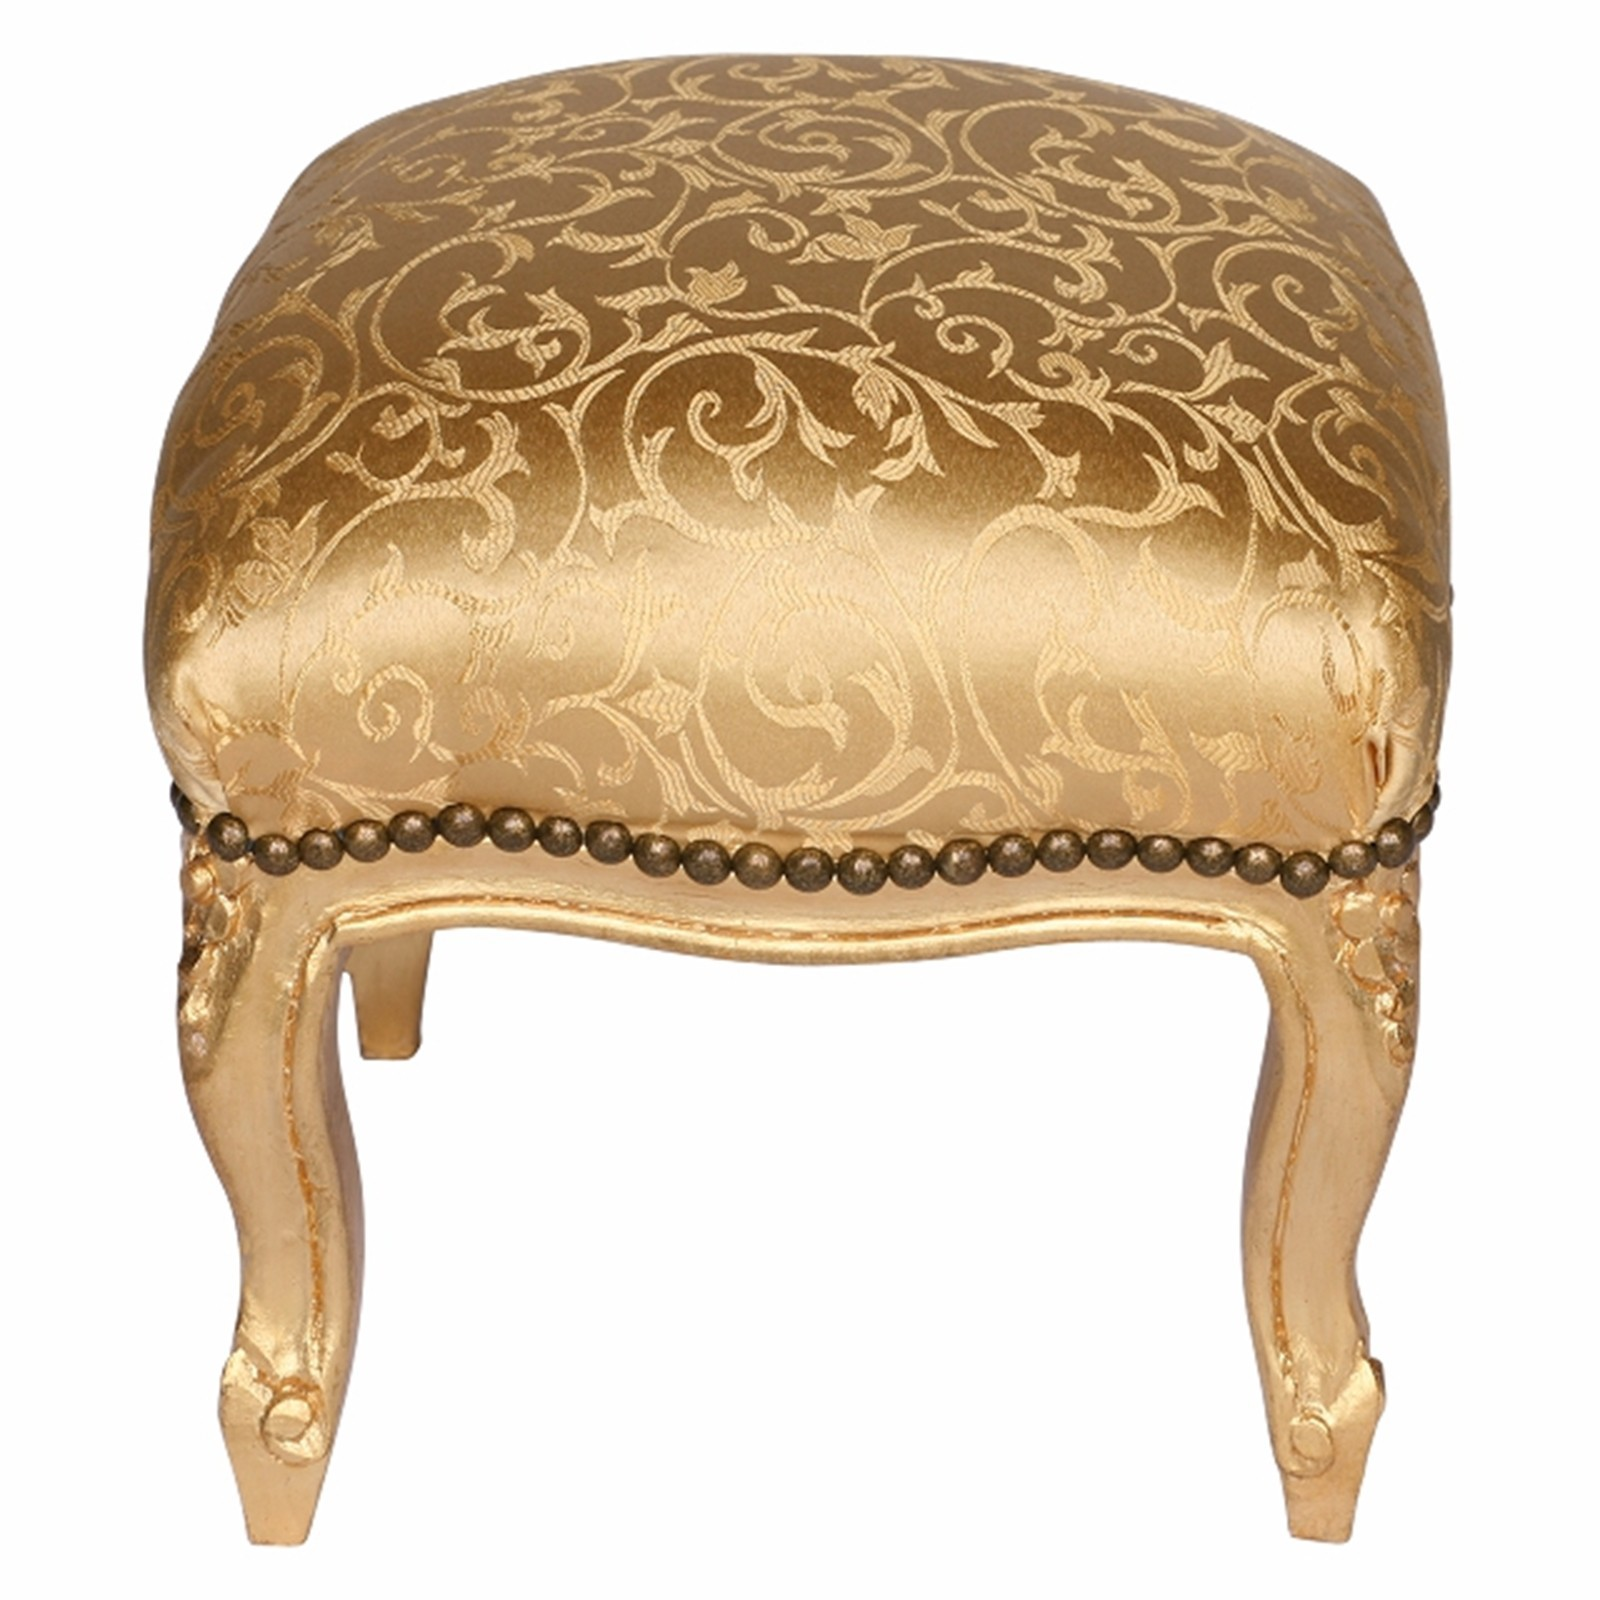 fu st tze goldener hocker barock gold gemustert stoffbezug. Black Bedroom Furniture Sets. Home Design Ideas